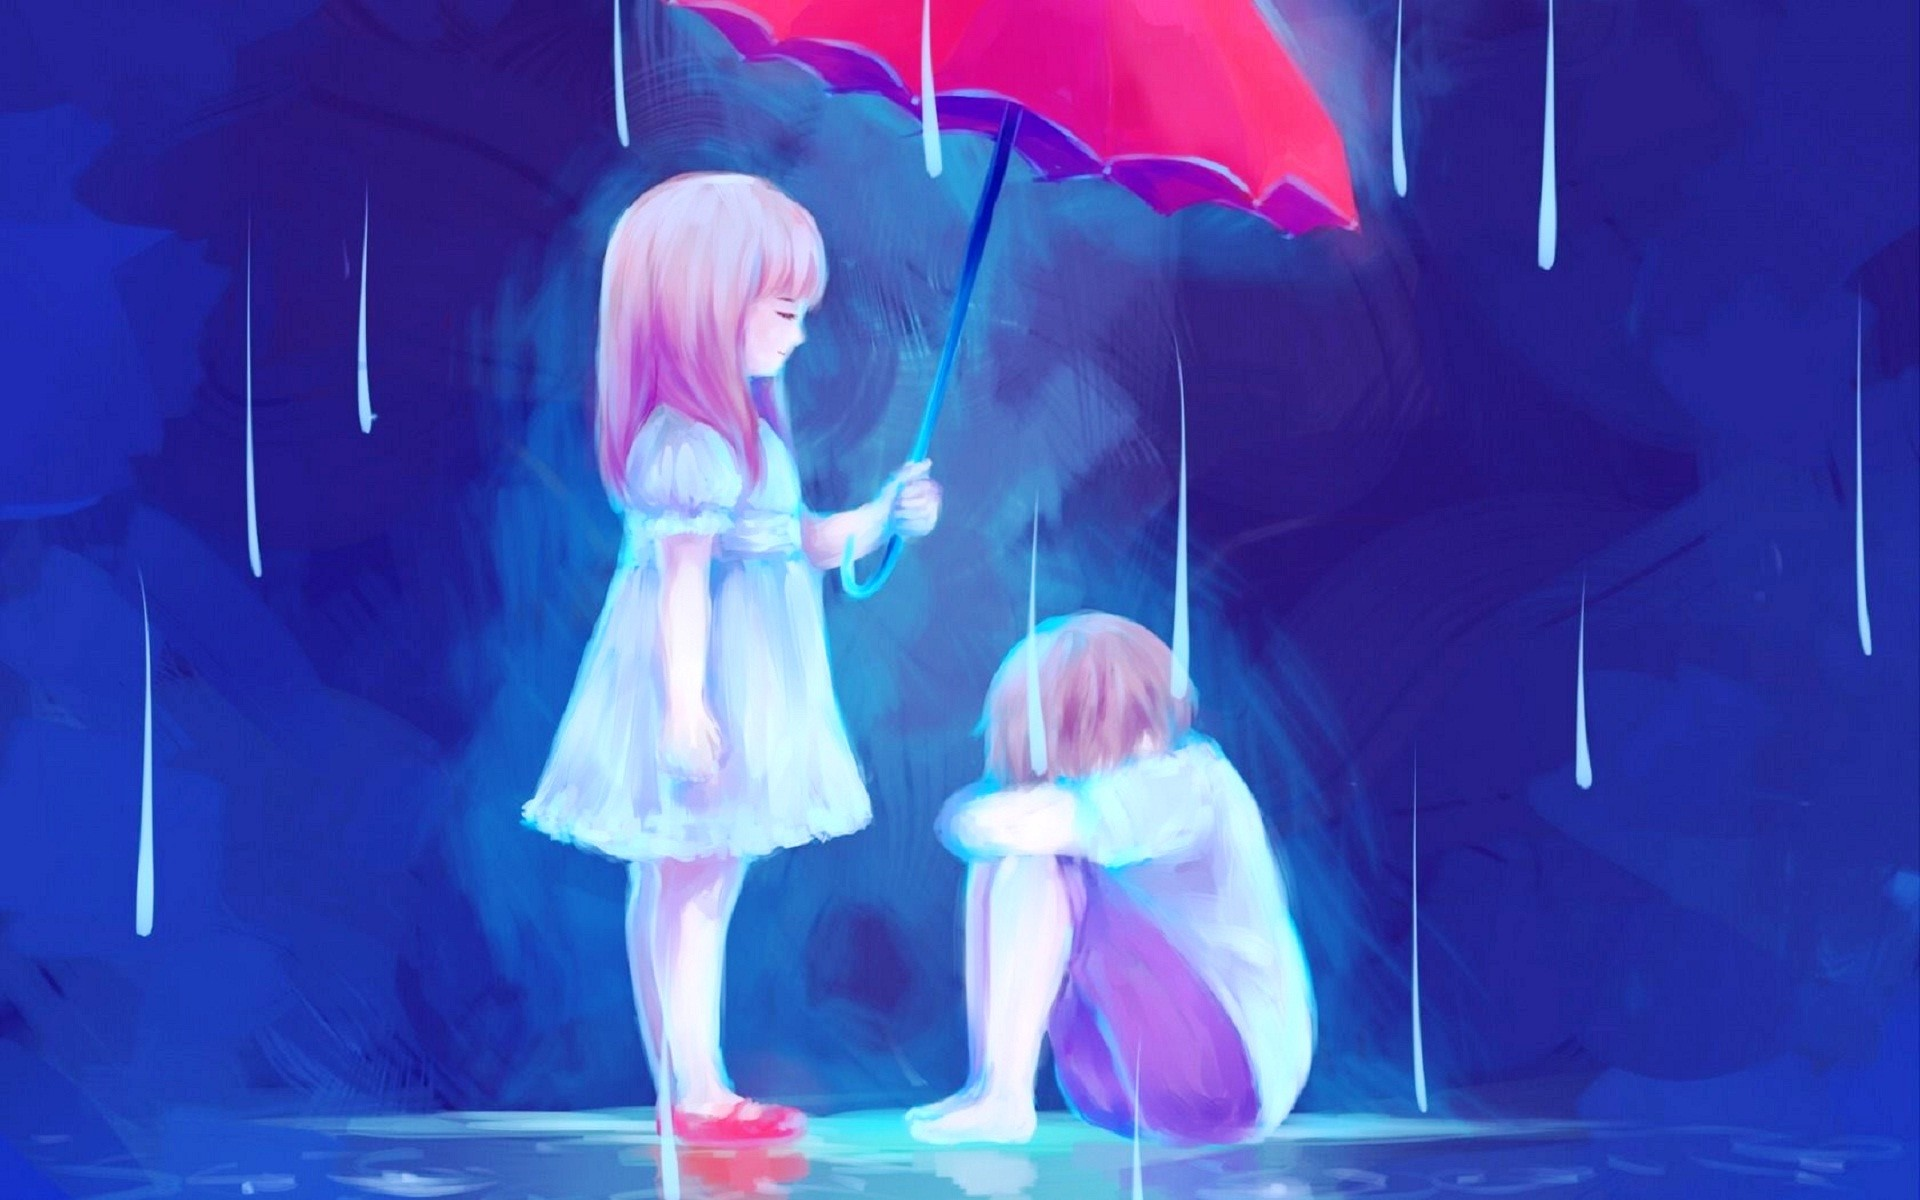 Res: 1920x1200, Performance, Romance, Purple, Painting, Entertainment HD Wallpaper, Anime  Picture, Background and Image